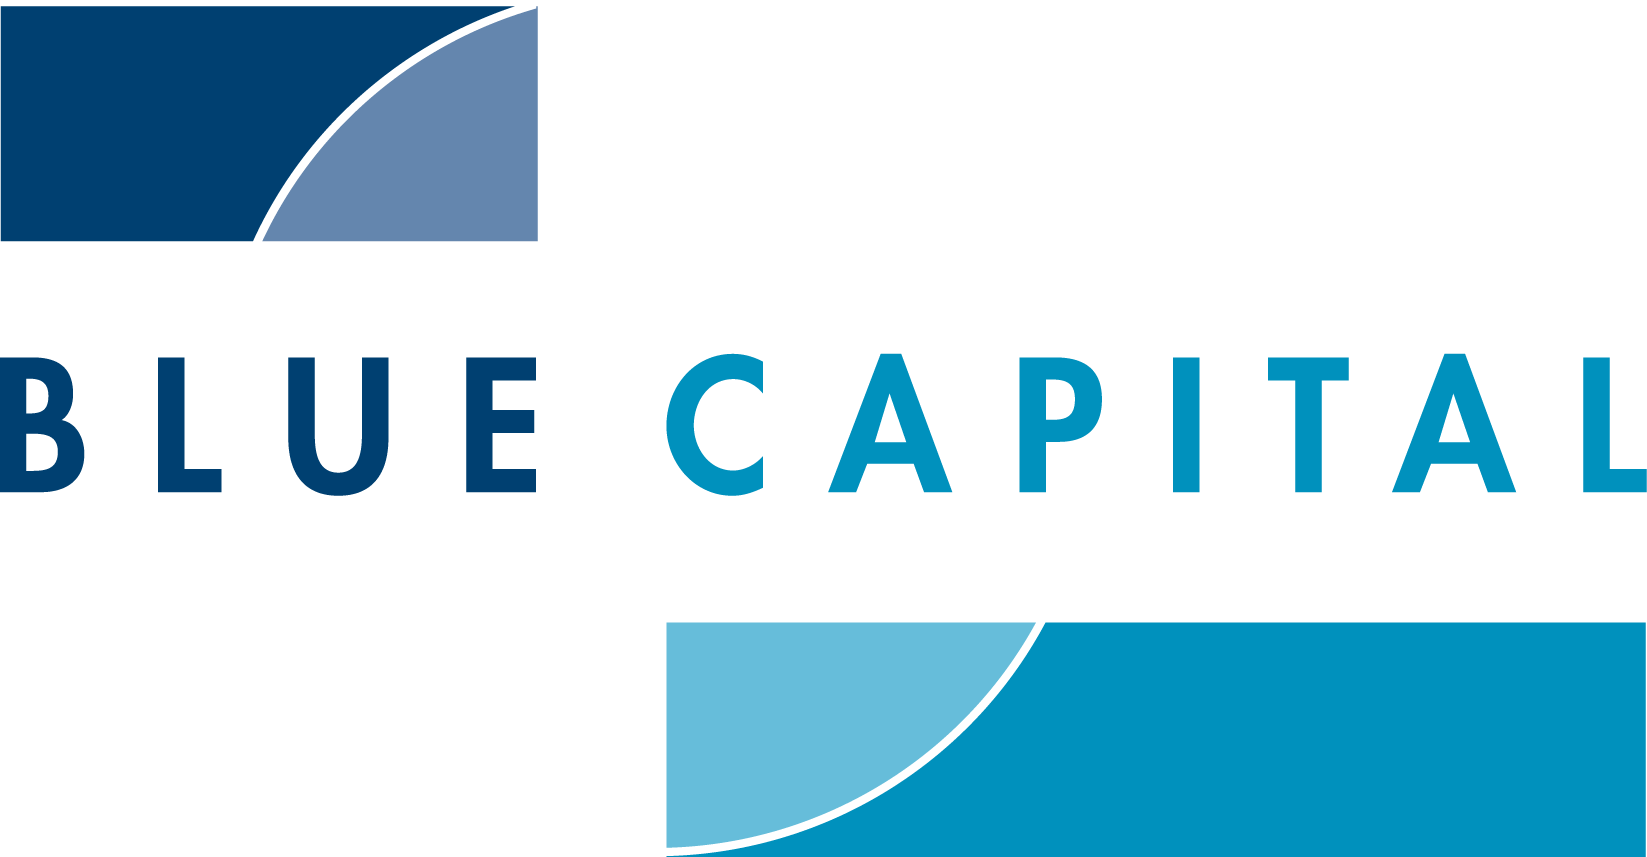 BLUE CAPITAL logo